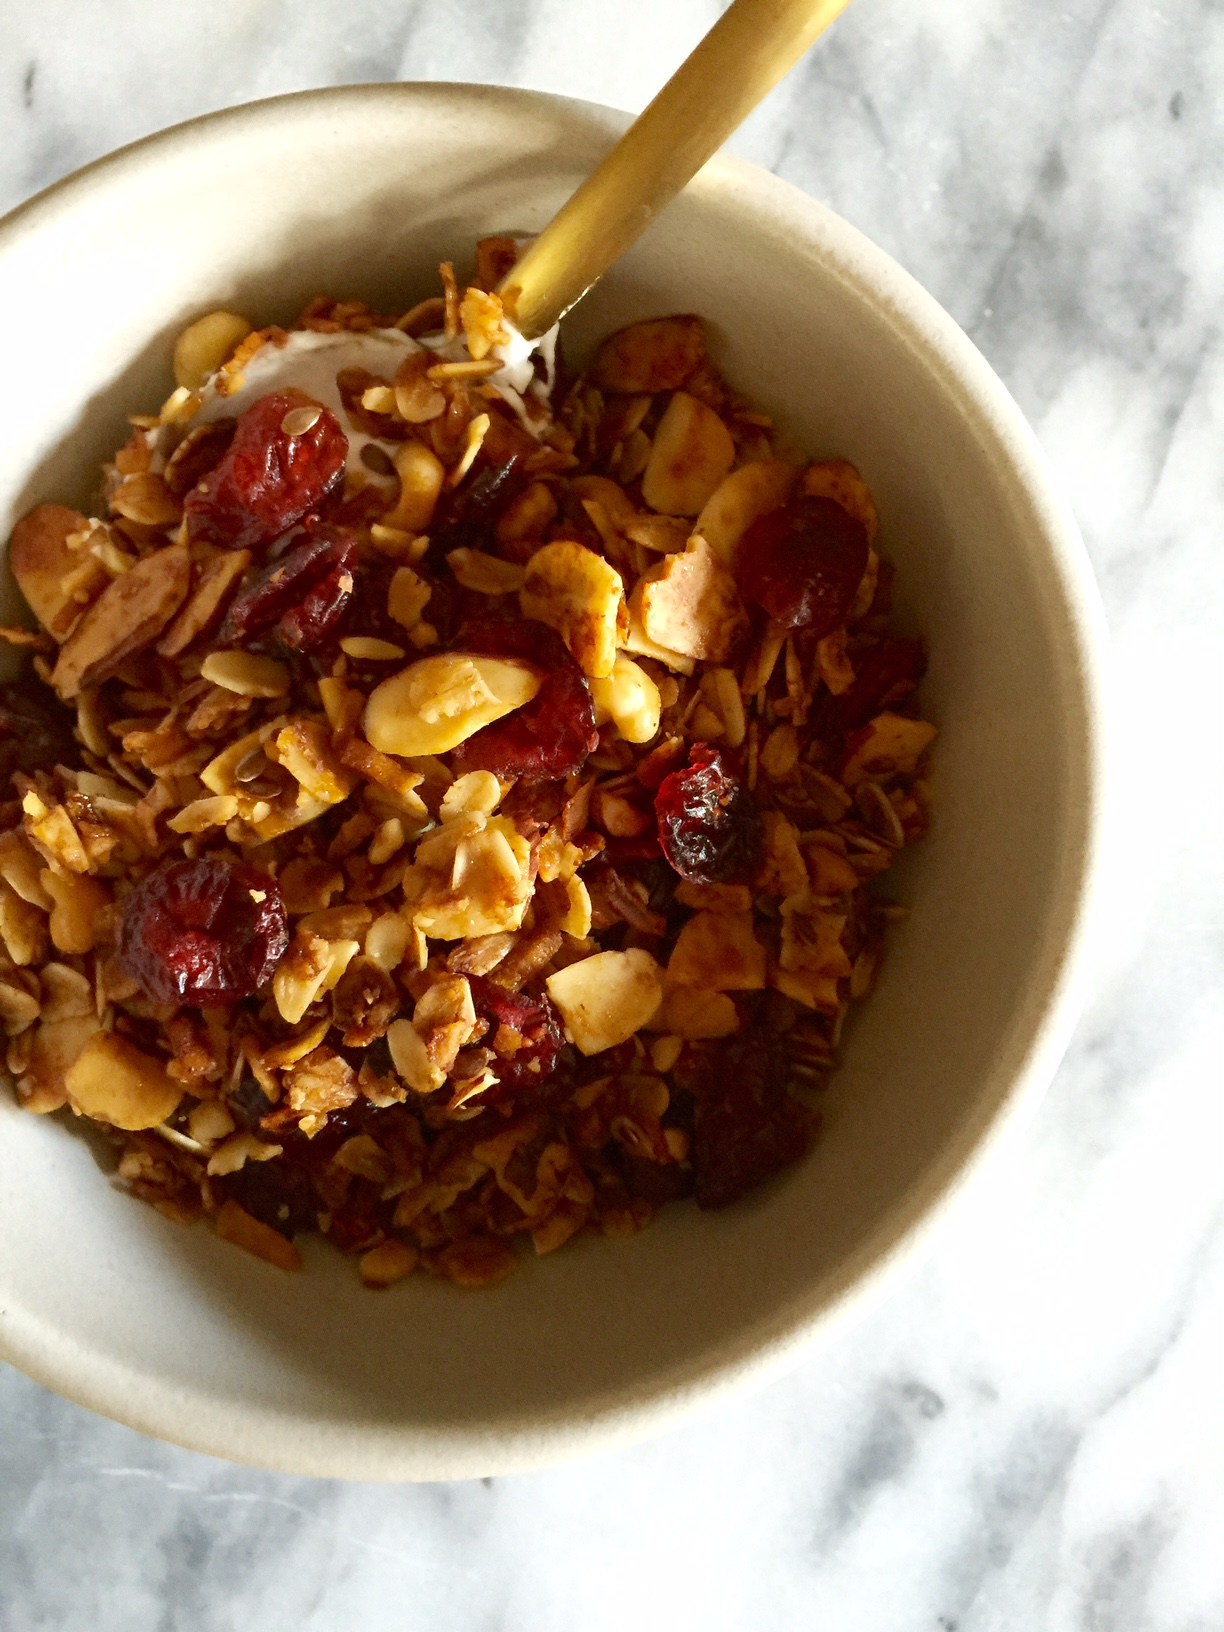 Homemade Sweet & Savory Granola